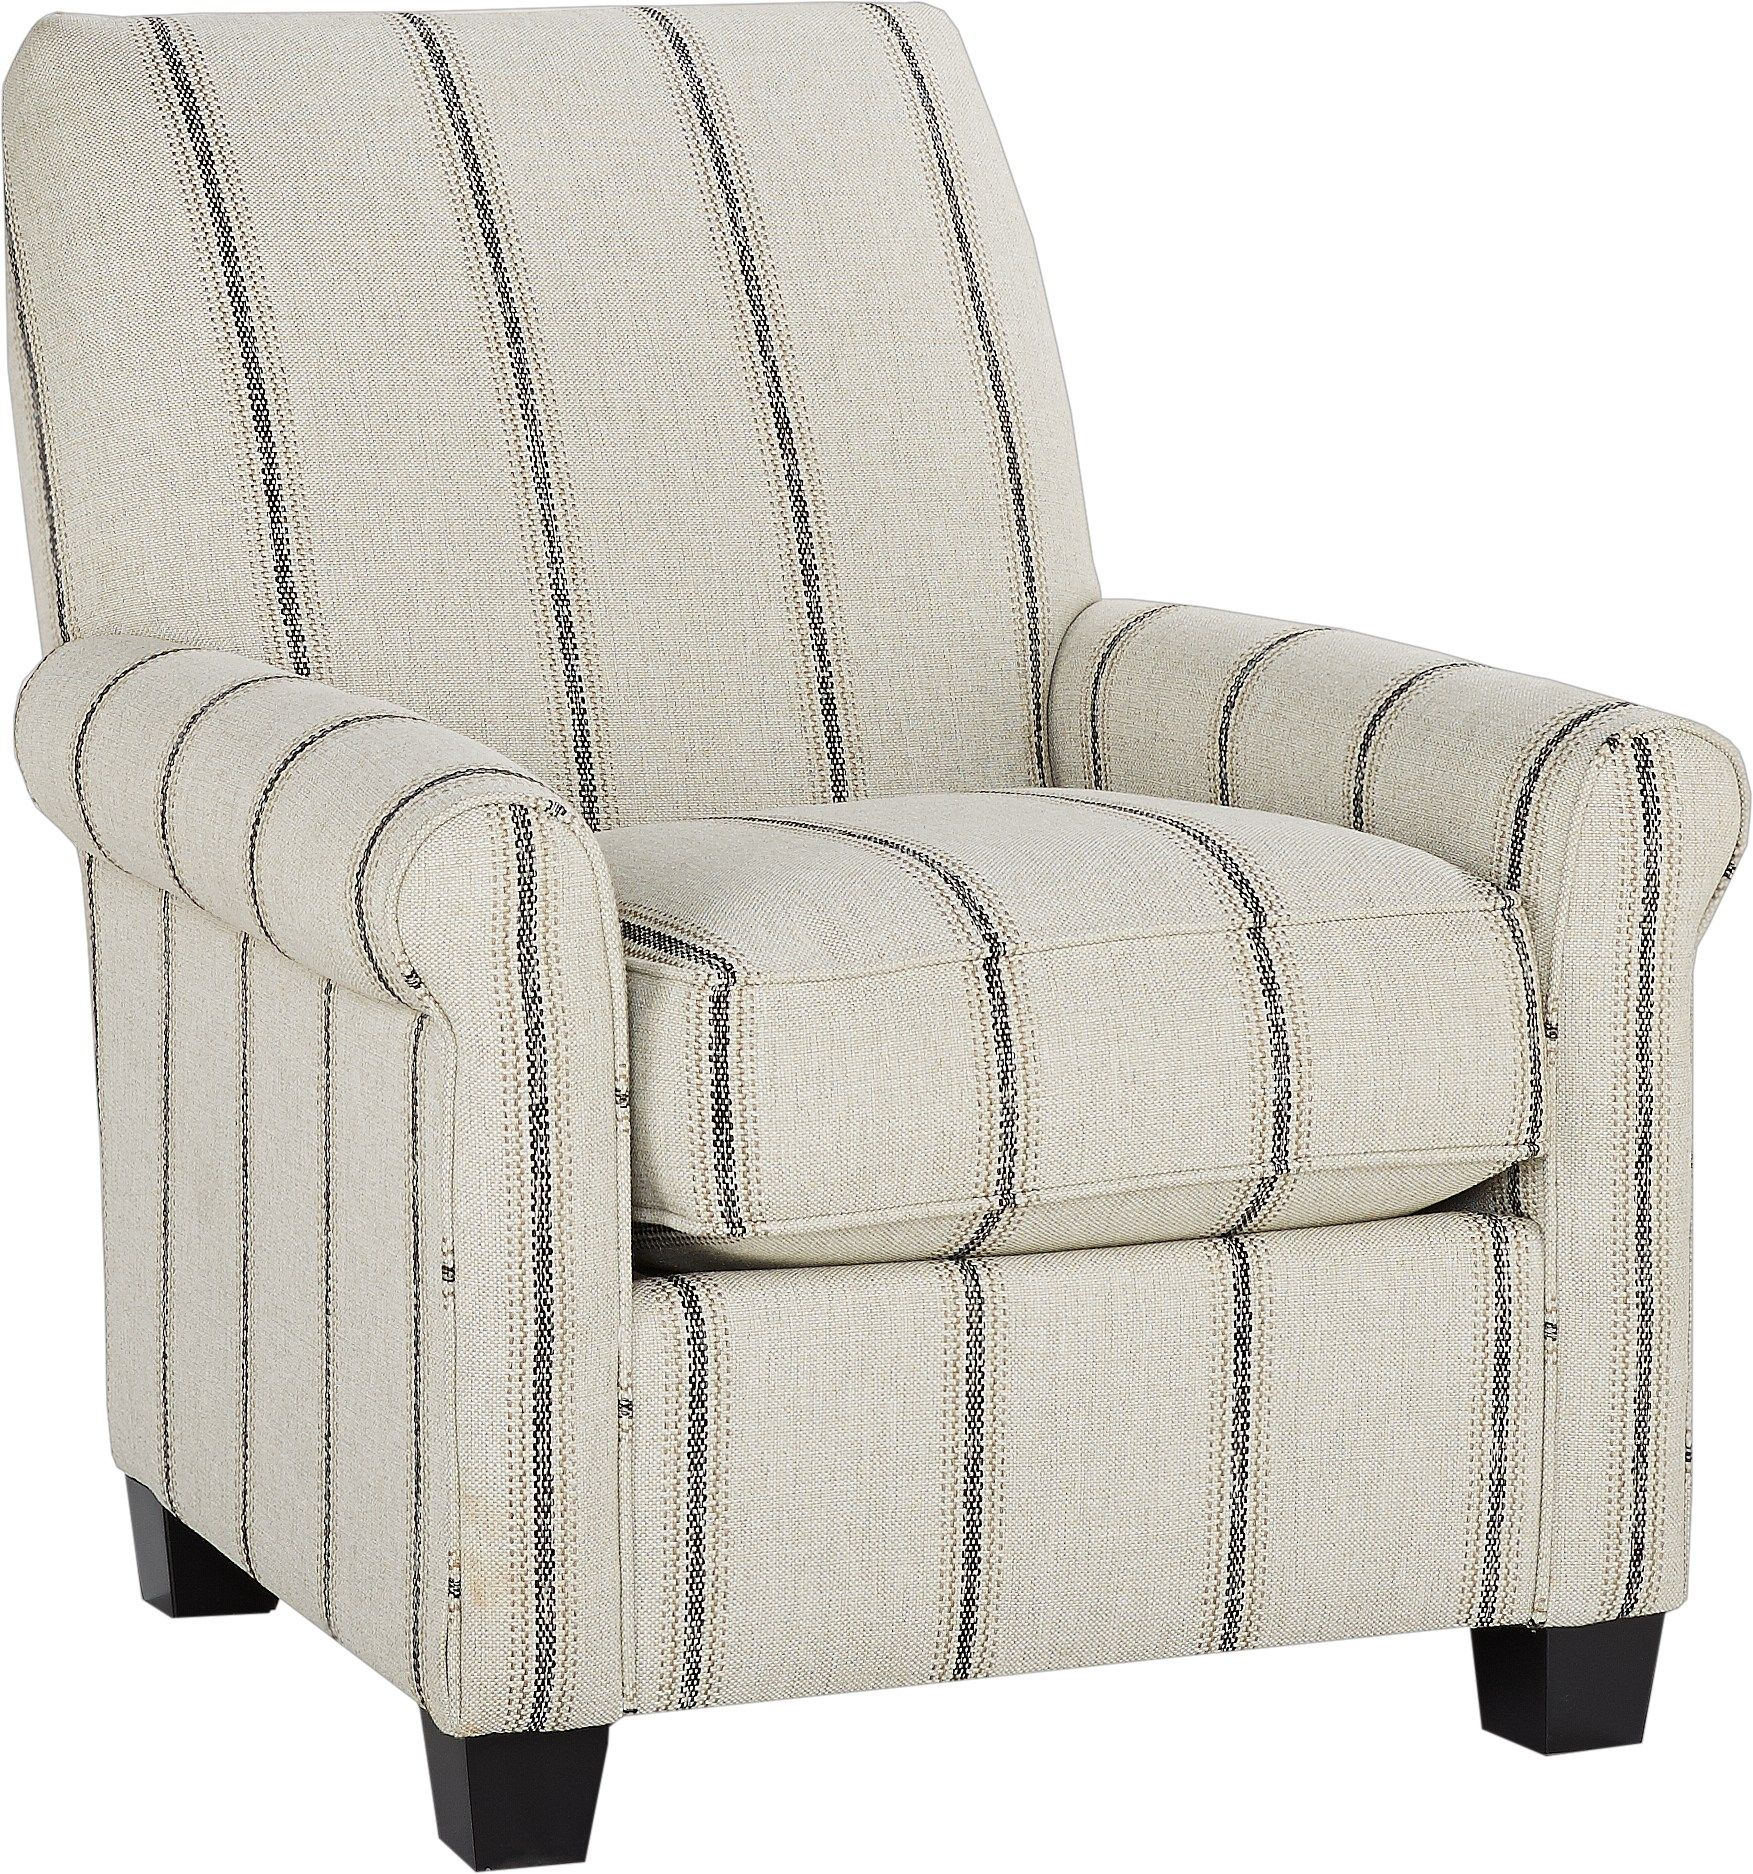 Cindy Crawford Home Lincoln Square Beige Accent Chair In